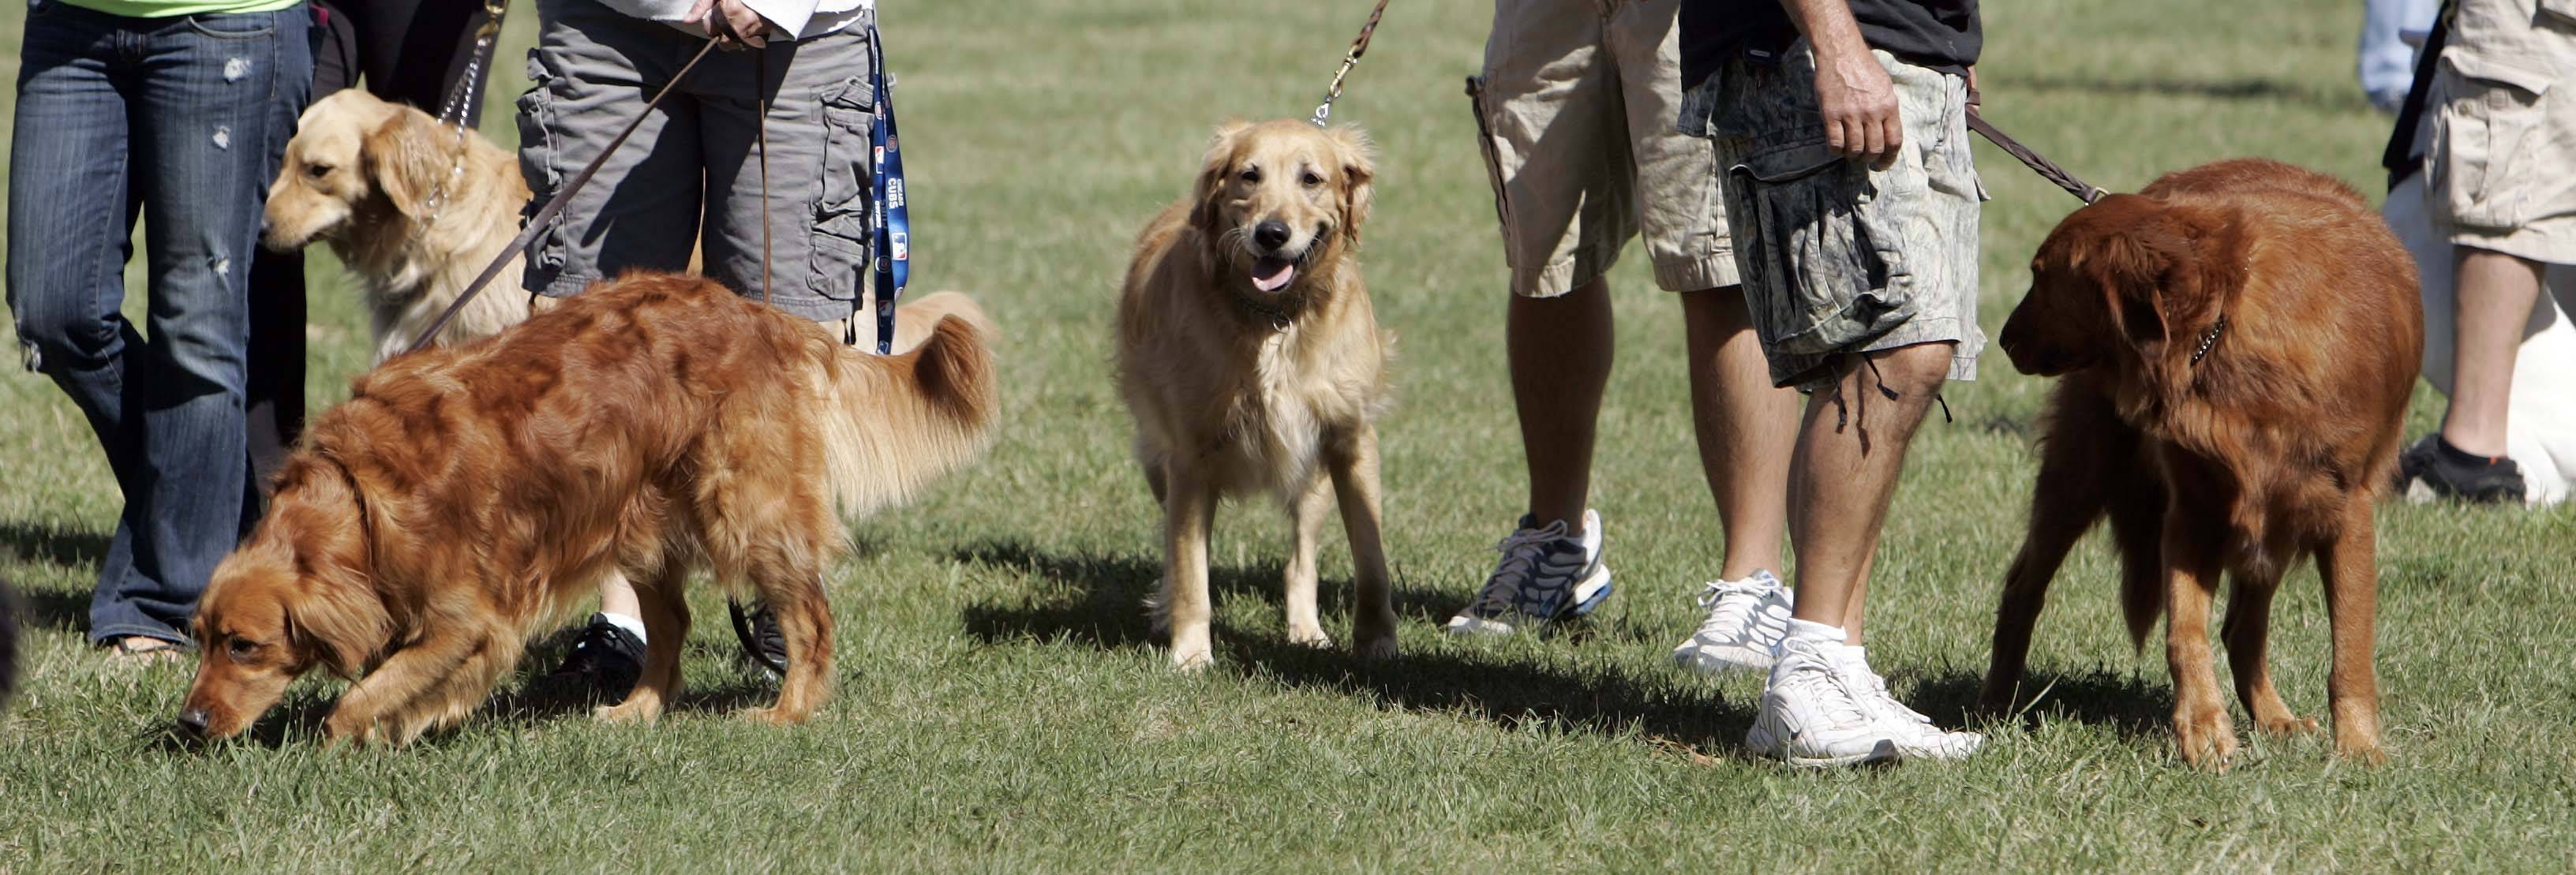 Hundreds of dogs and their owners are expected to attend Dog Days of Dundee at Randall Oaks Park in West Dundee. The event runs from 11 a.m. to 3 p.m. Saturday, Sept. 6.